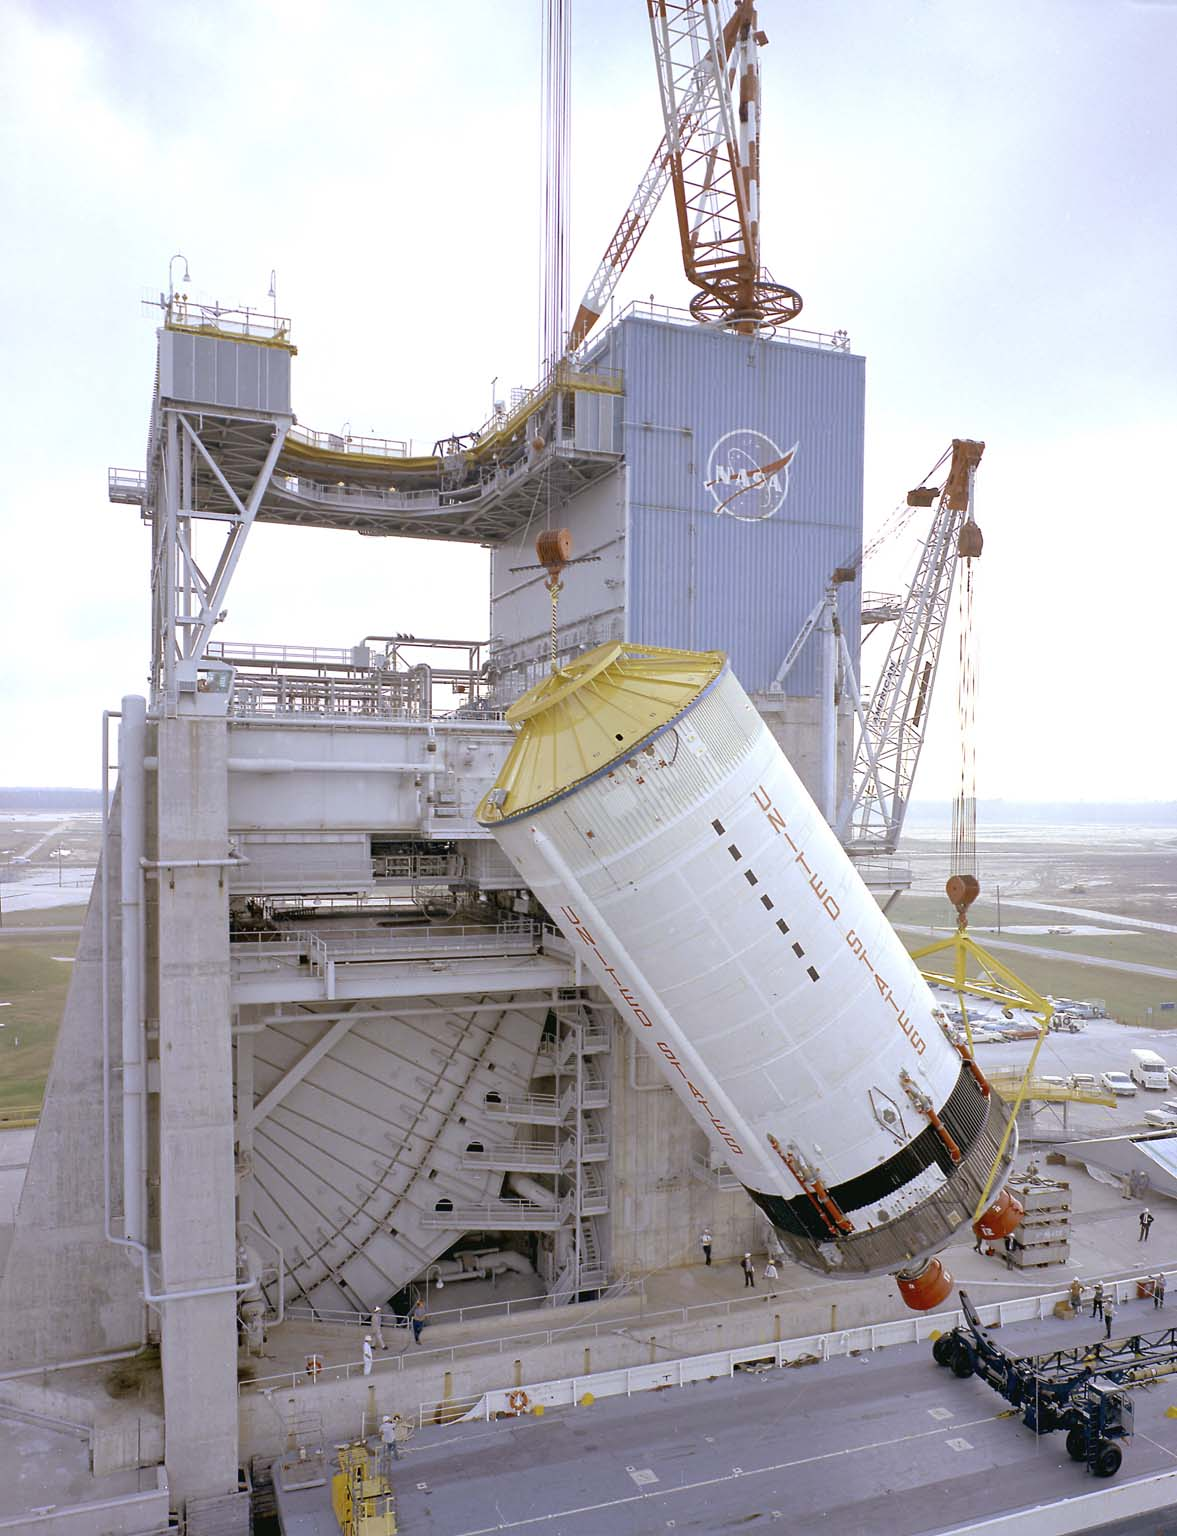 Saturn V S-II (Second) Stage at the Mississippi Test Facility